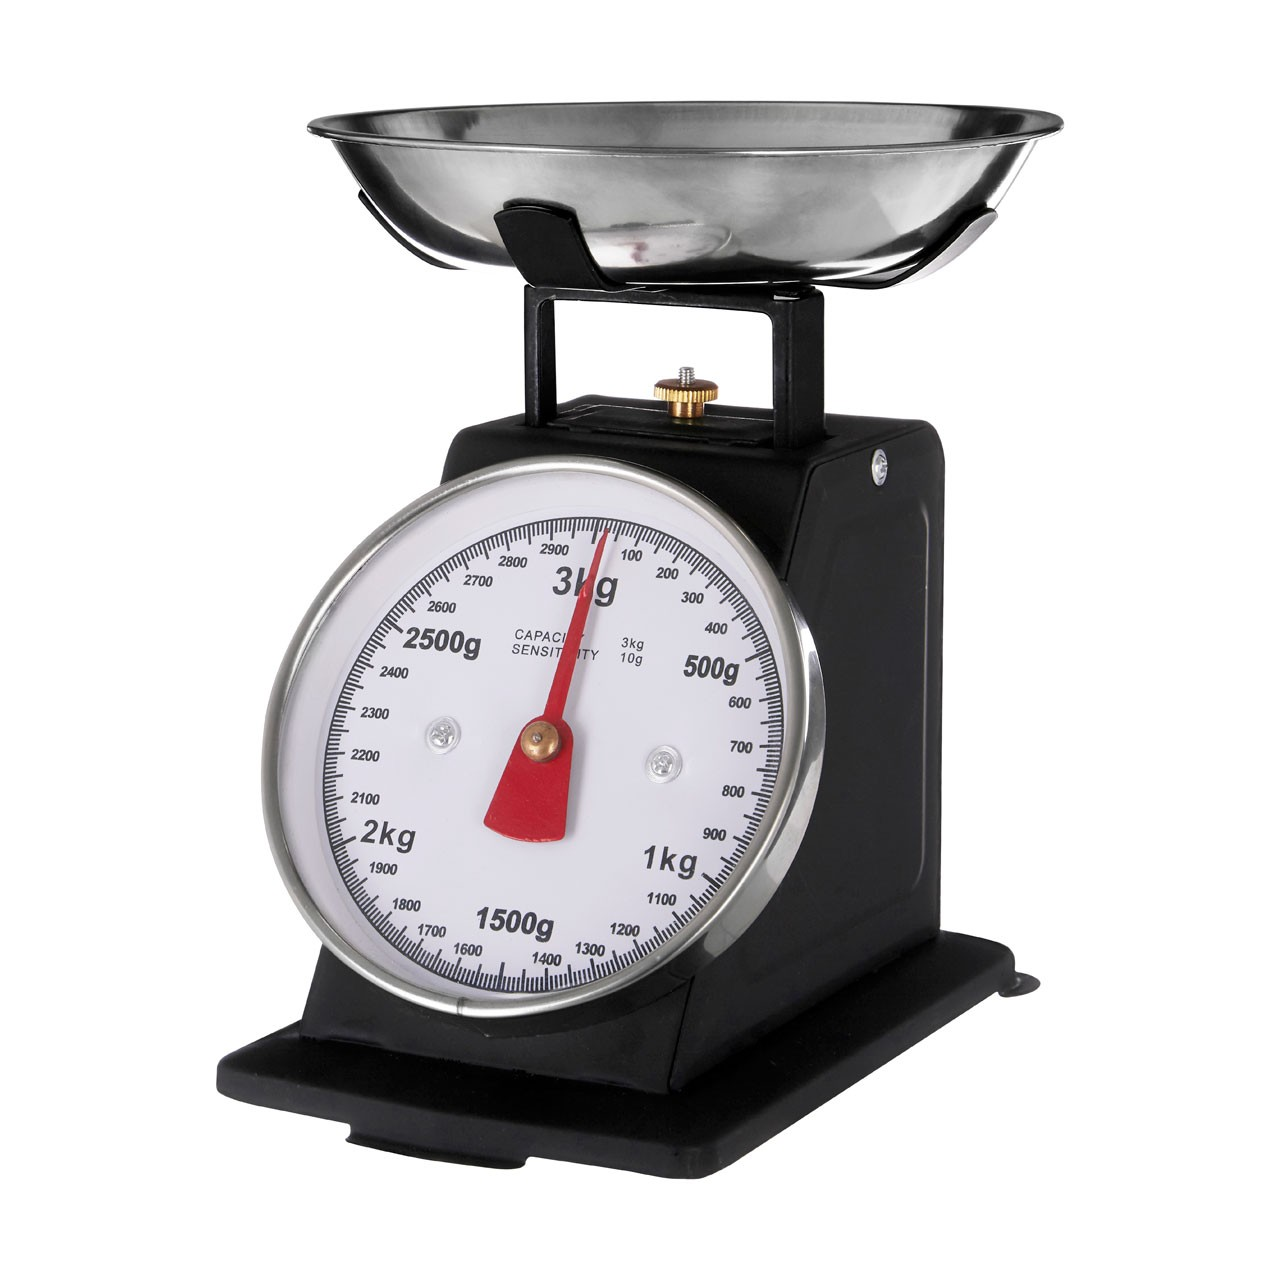 3 kg Retro Style Kitchen Scale with Stainless Steel Bowl